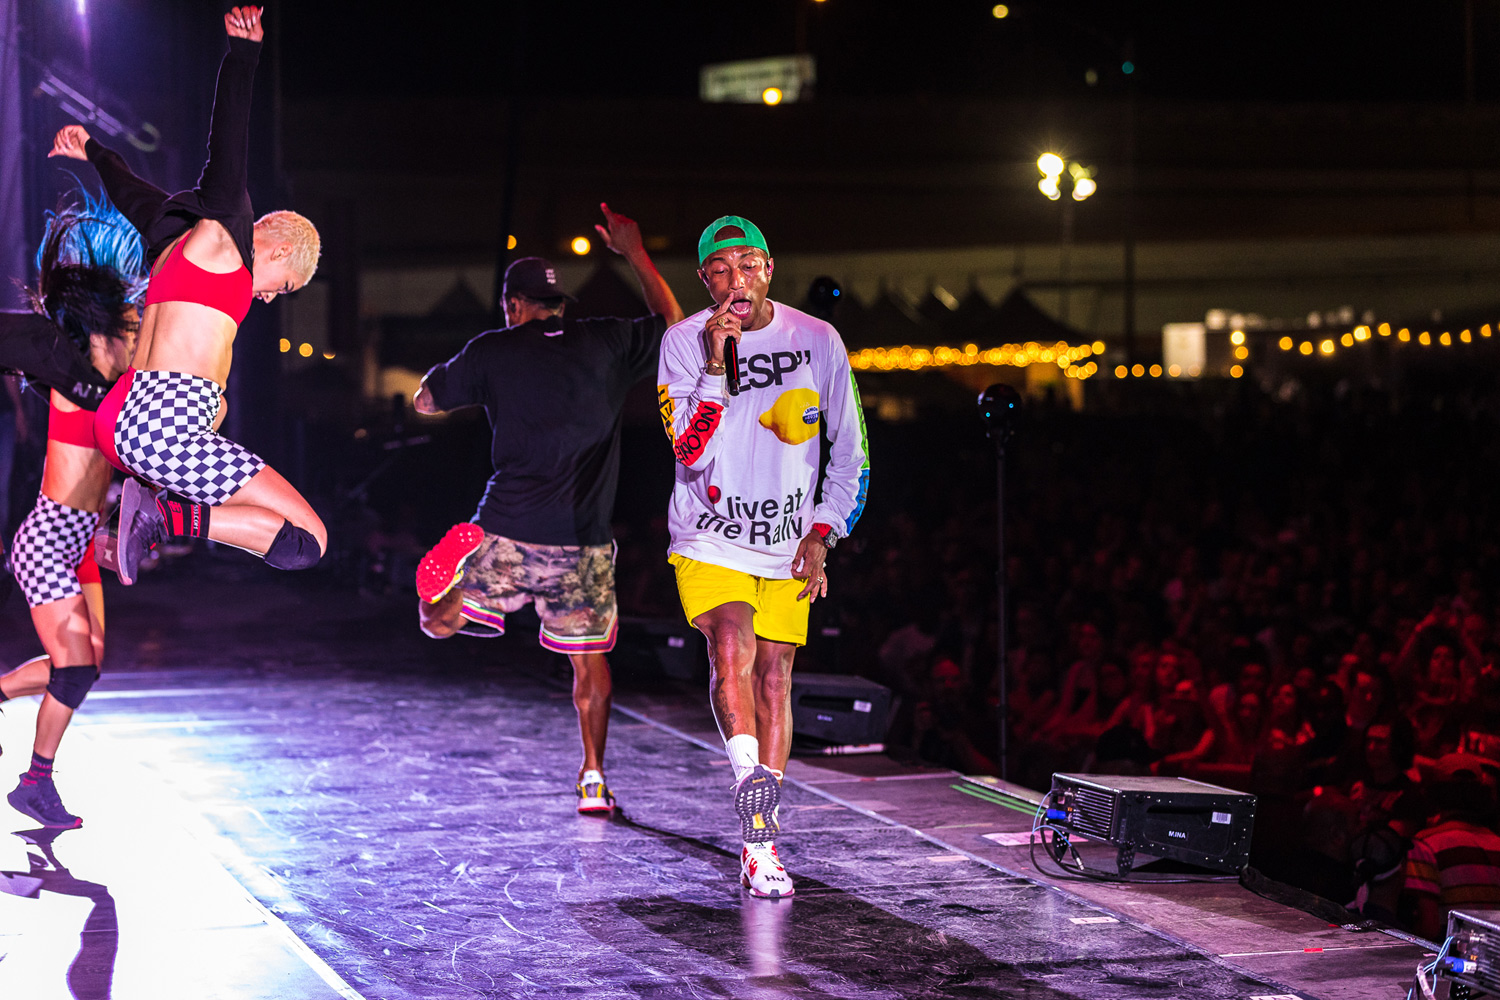 We're gonna climb your walls: Pharrell critica al gobierno de EU en el show de N.E.R.D